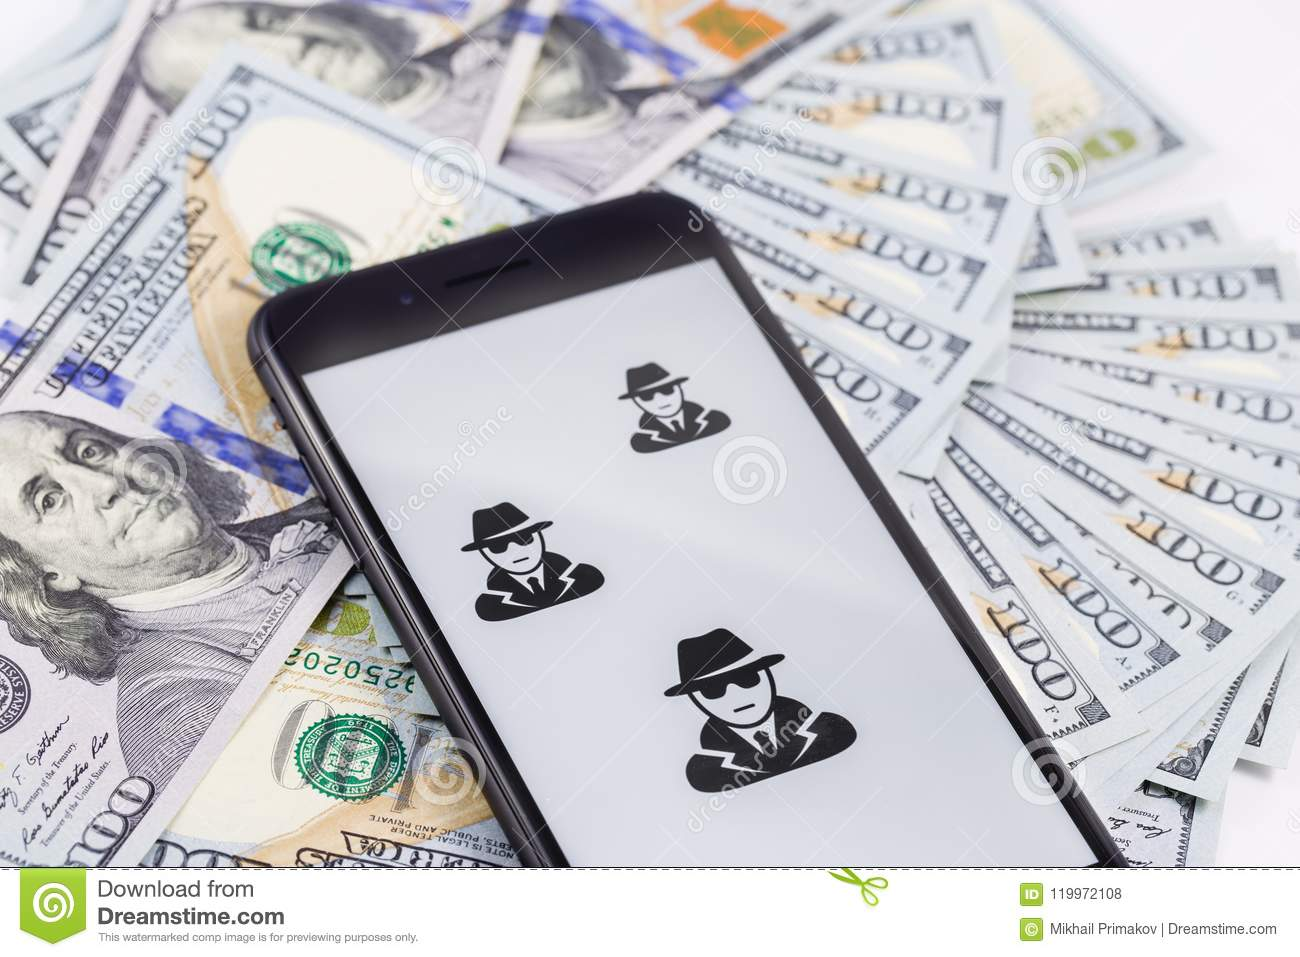 Apple iPhone 8+ with anonymous and hackers and money